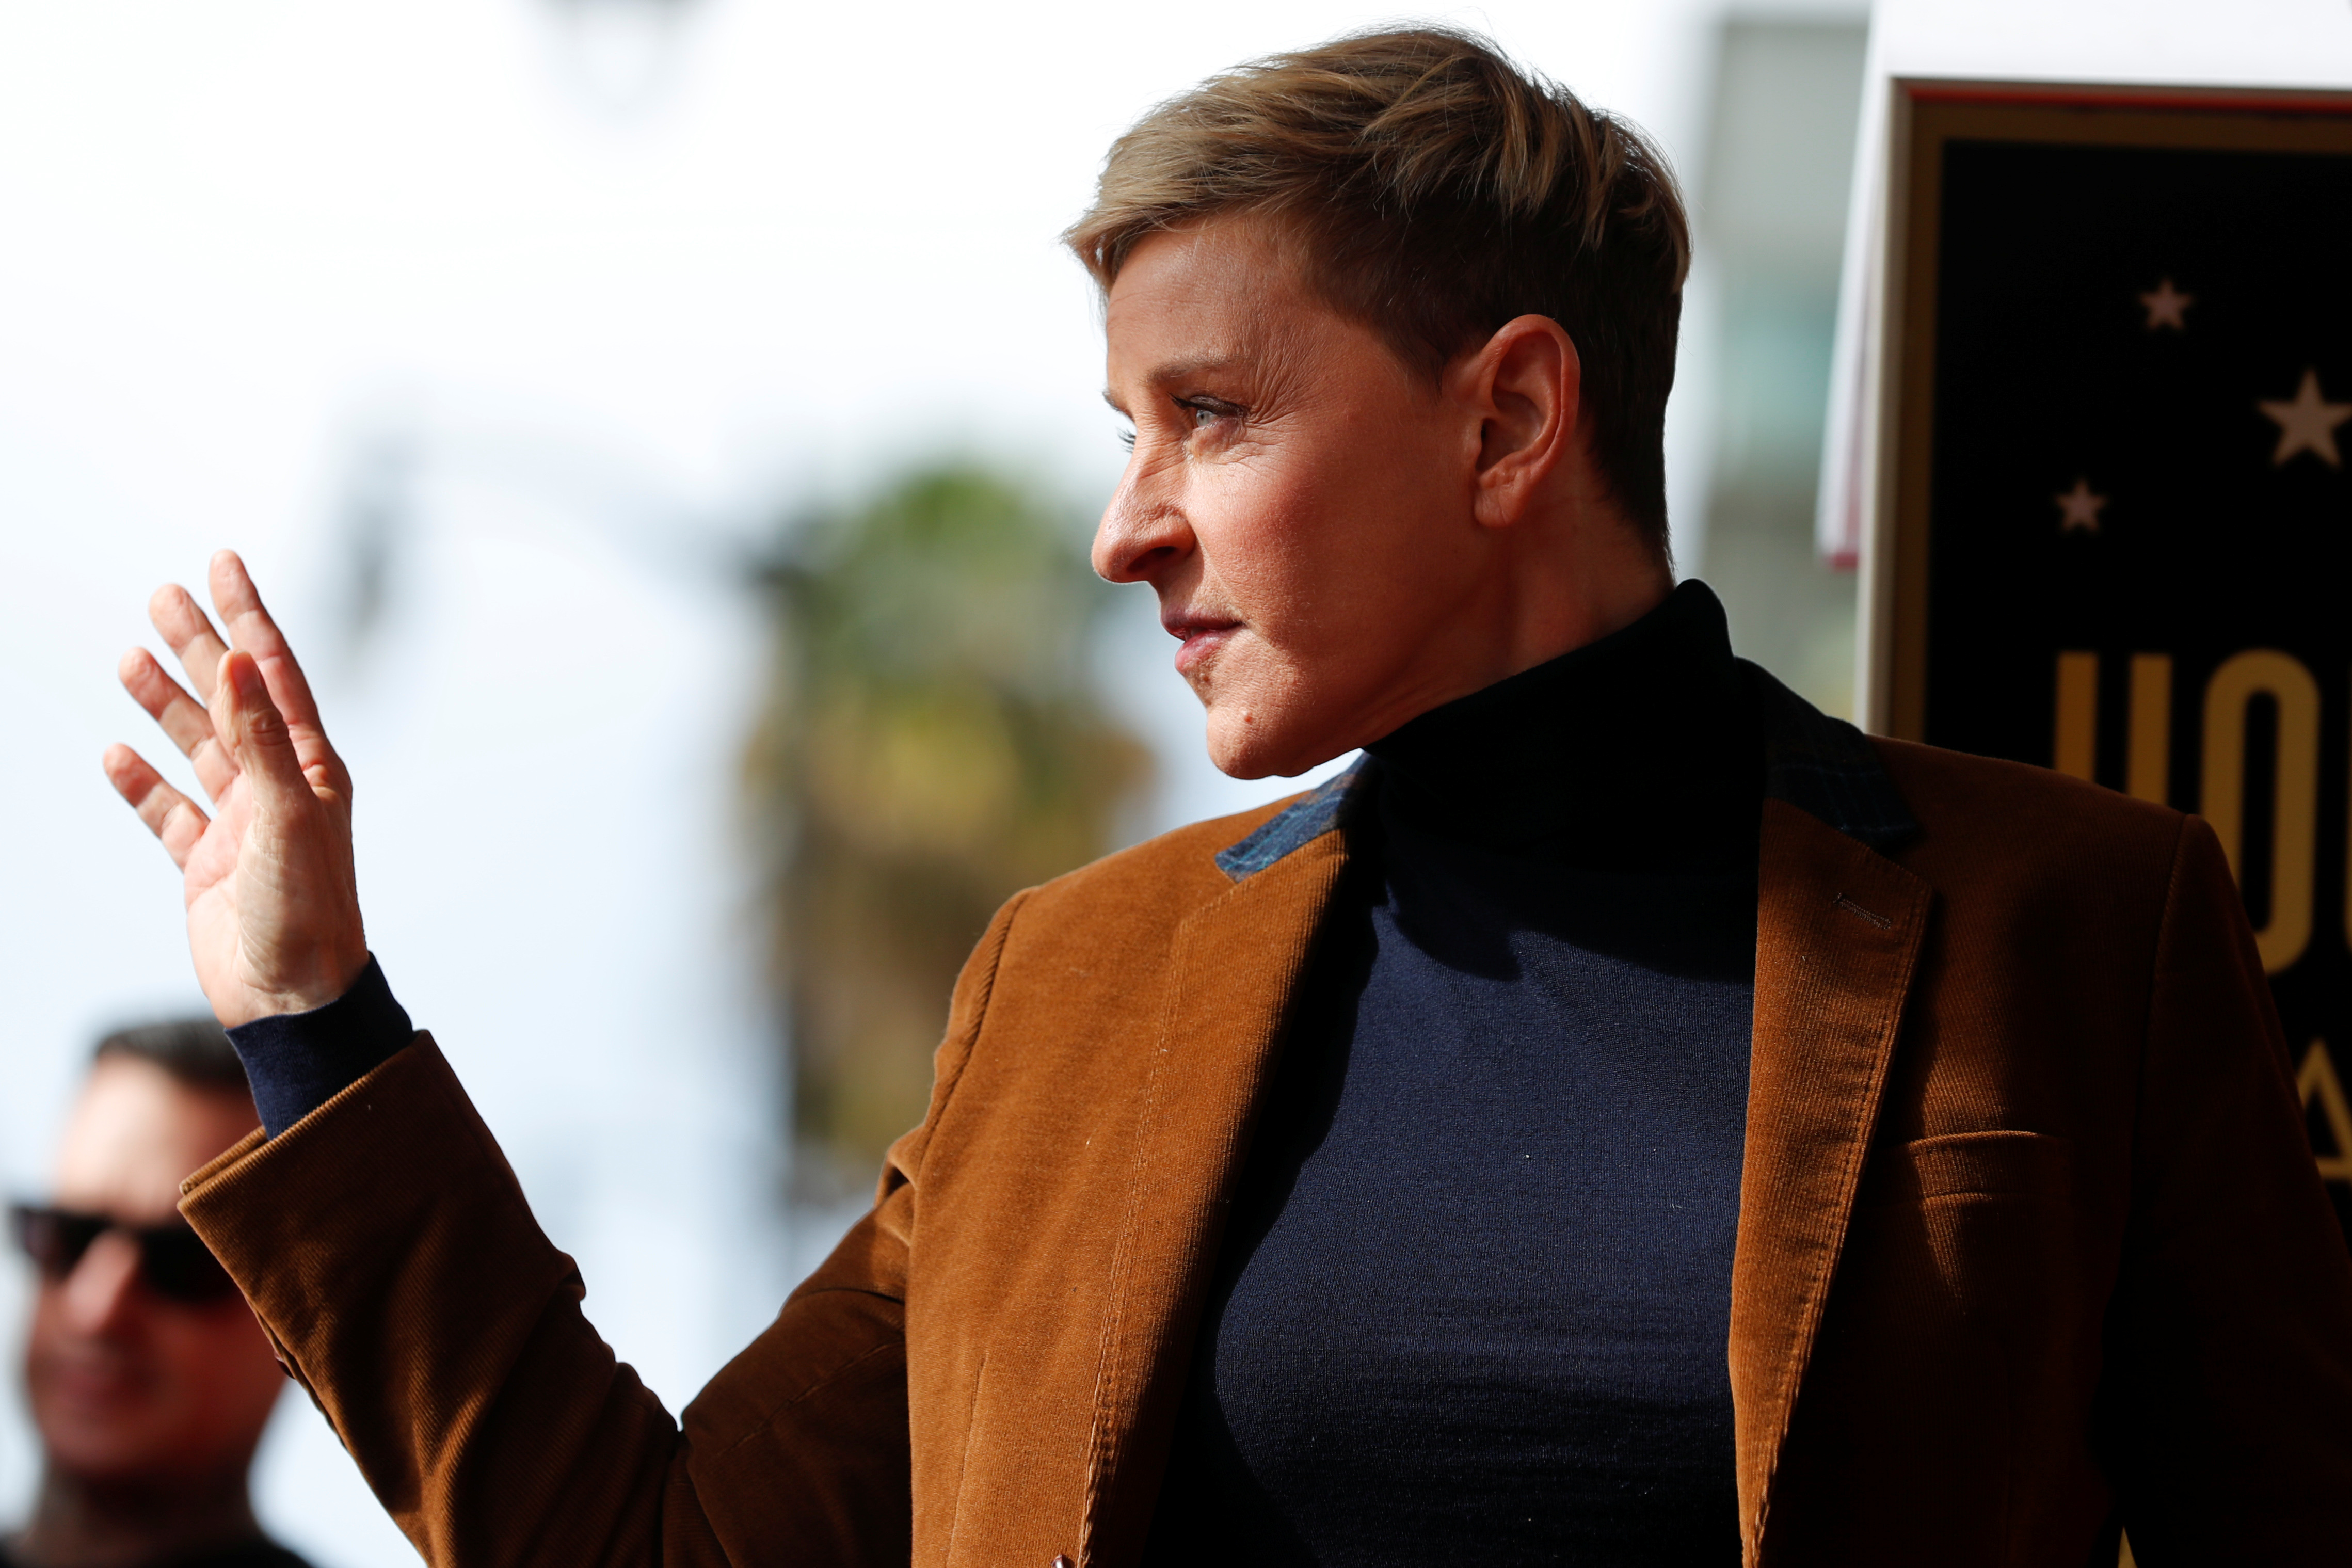 Comedian and talkshow host Ellen DeGeneres waves to fans as she attends a ceremony for singer Pink at the Hollywood Walk of Fame in Los Angeles, California, U.S., February 5, 2019.    REUTERS/Mike Blake